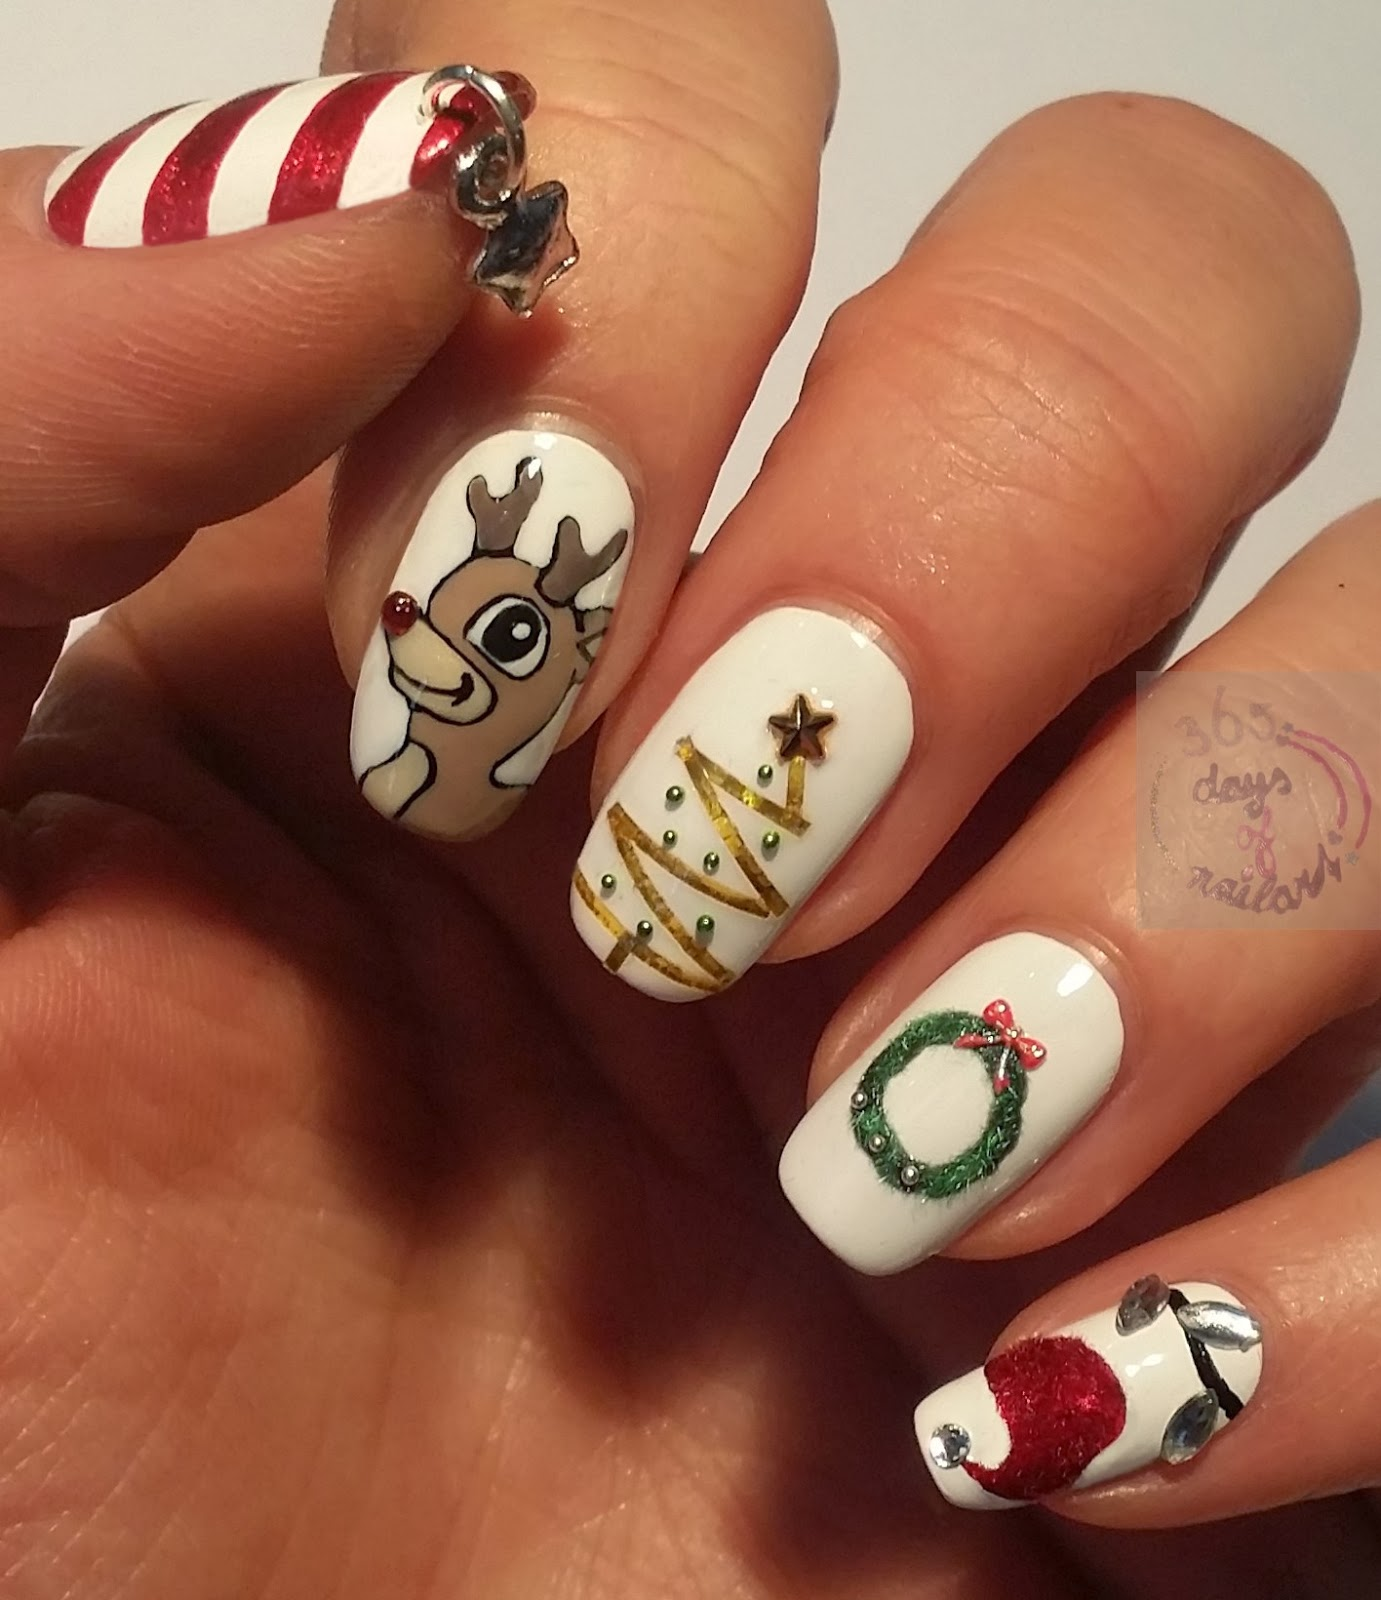 Christmas Nails Not Acrylic: 365+ Days Of Nail Art: Day 355) Christmas Nails With Subtle 3D